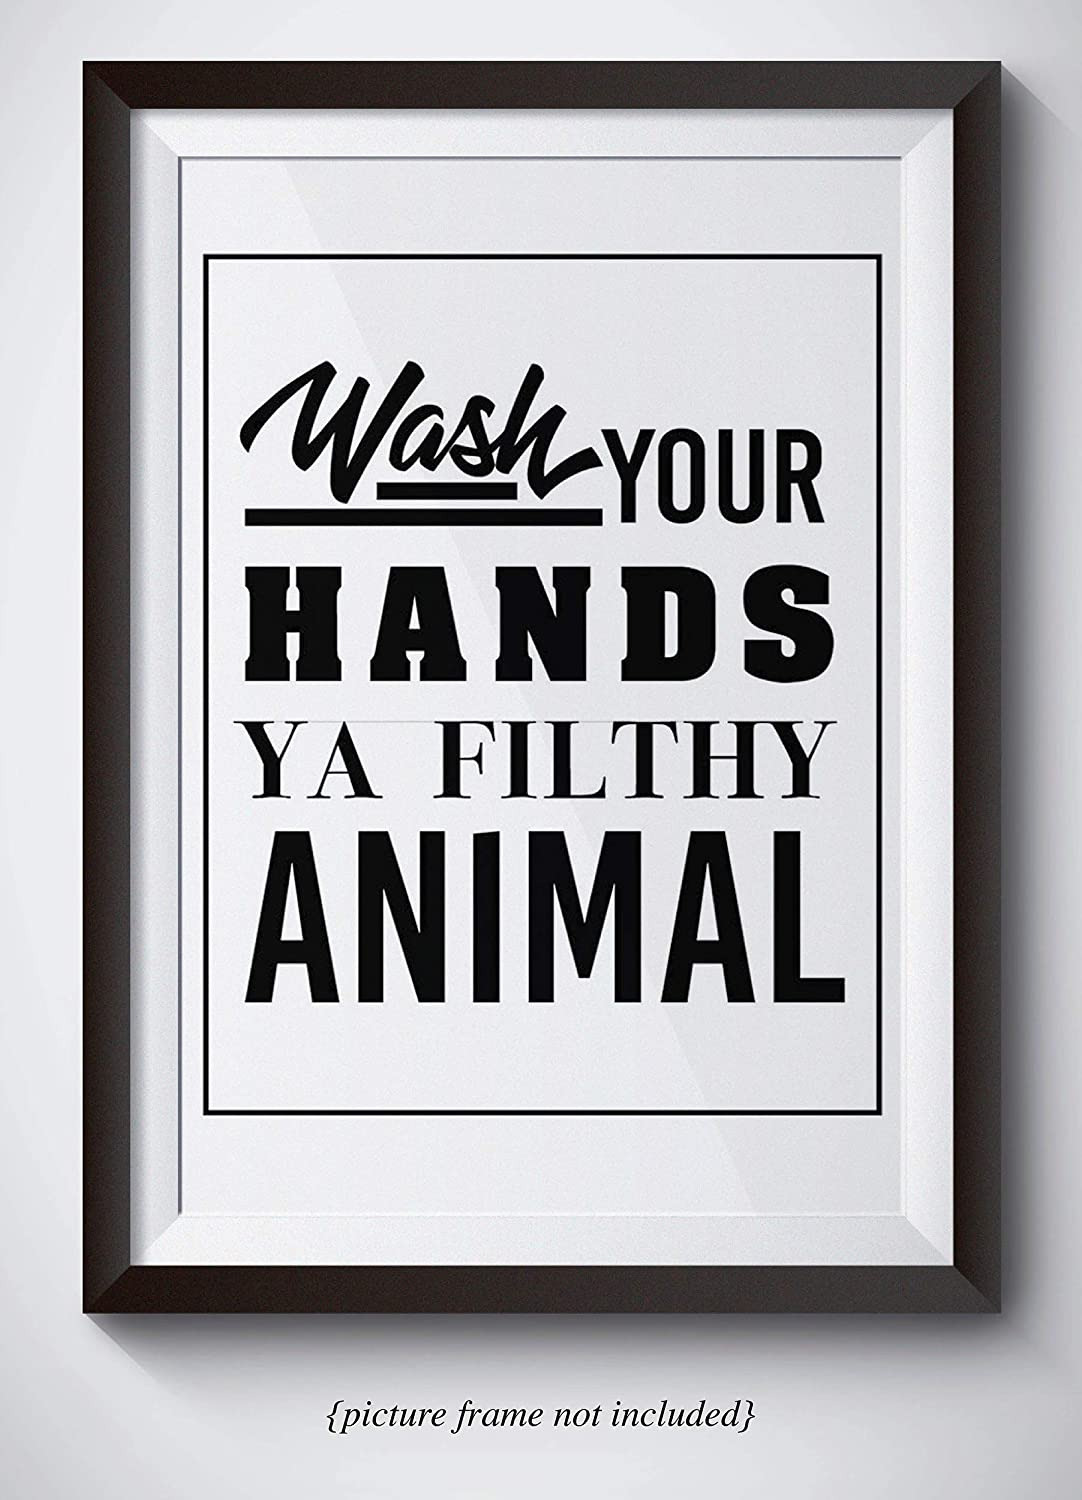 Animal Bathroom Decor New Funny Bathroom Decor Wash Your Hands You Filthy Animal Unframed 11x14 Print Bathroom Wall Art Funny Quote Poster Great Christmas Gift Under